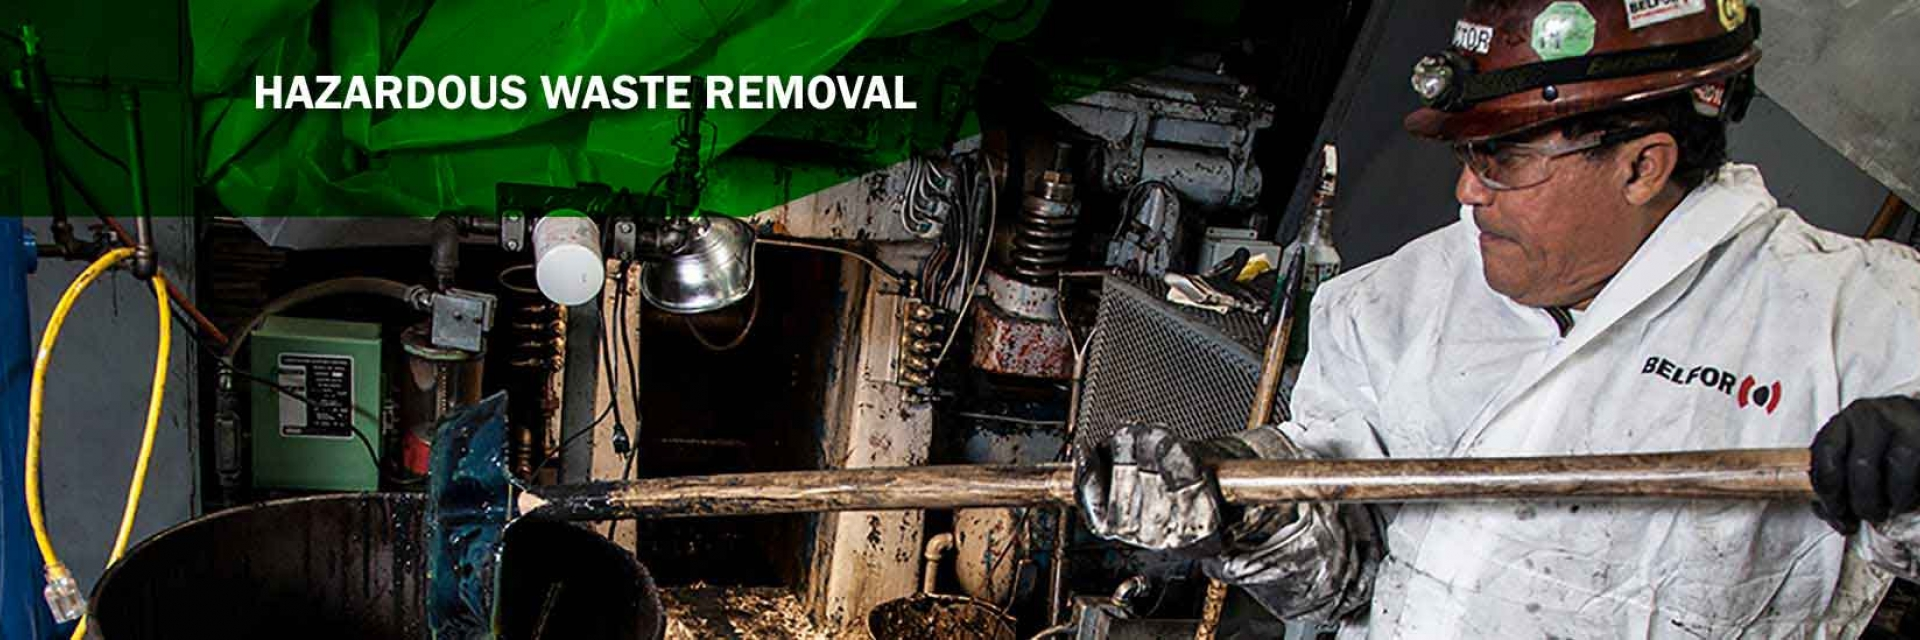 hazardous-waste-removal-banner